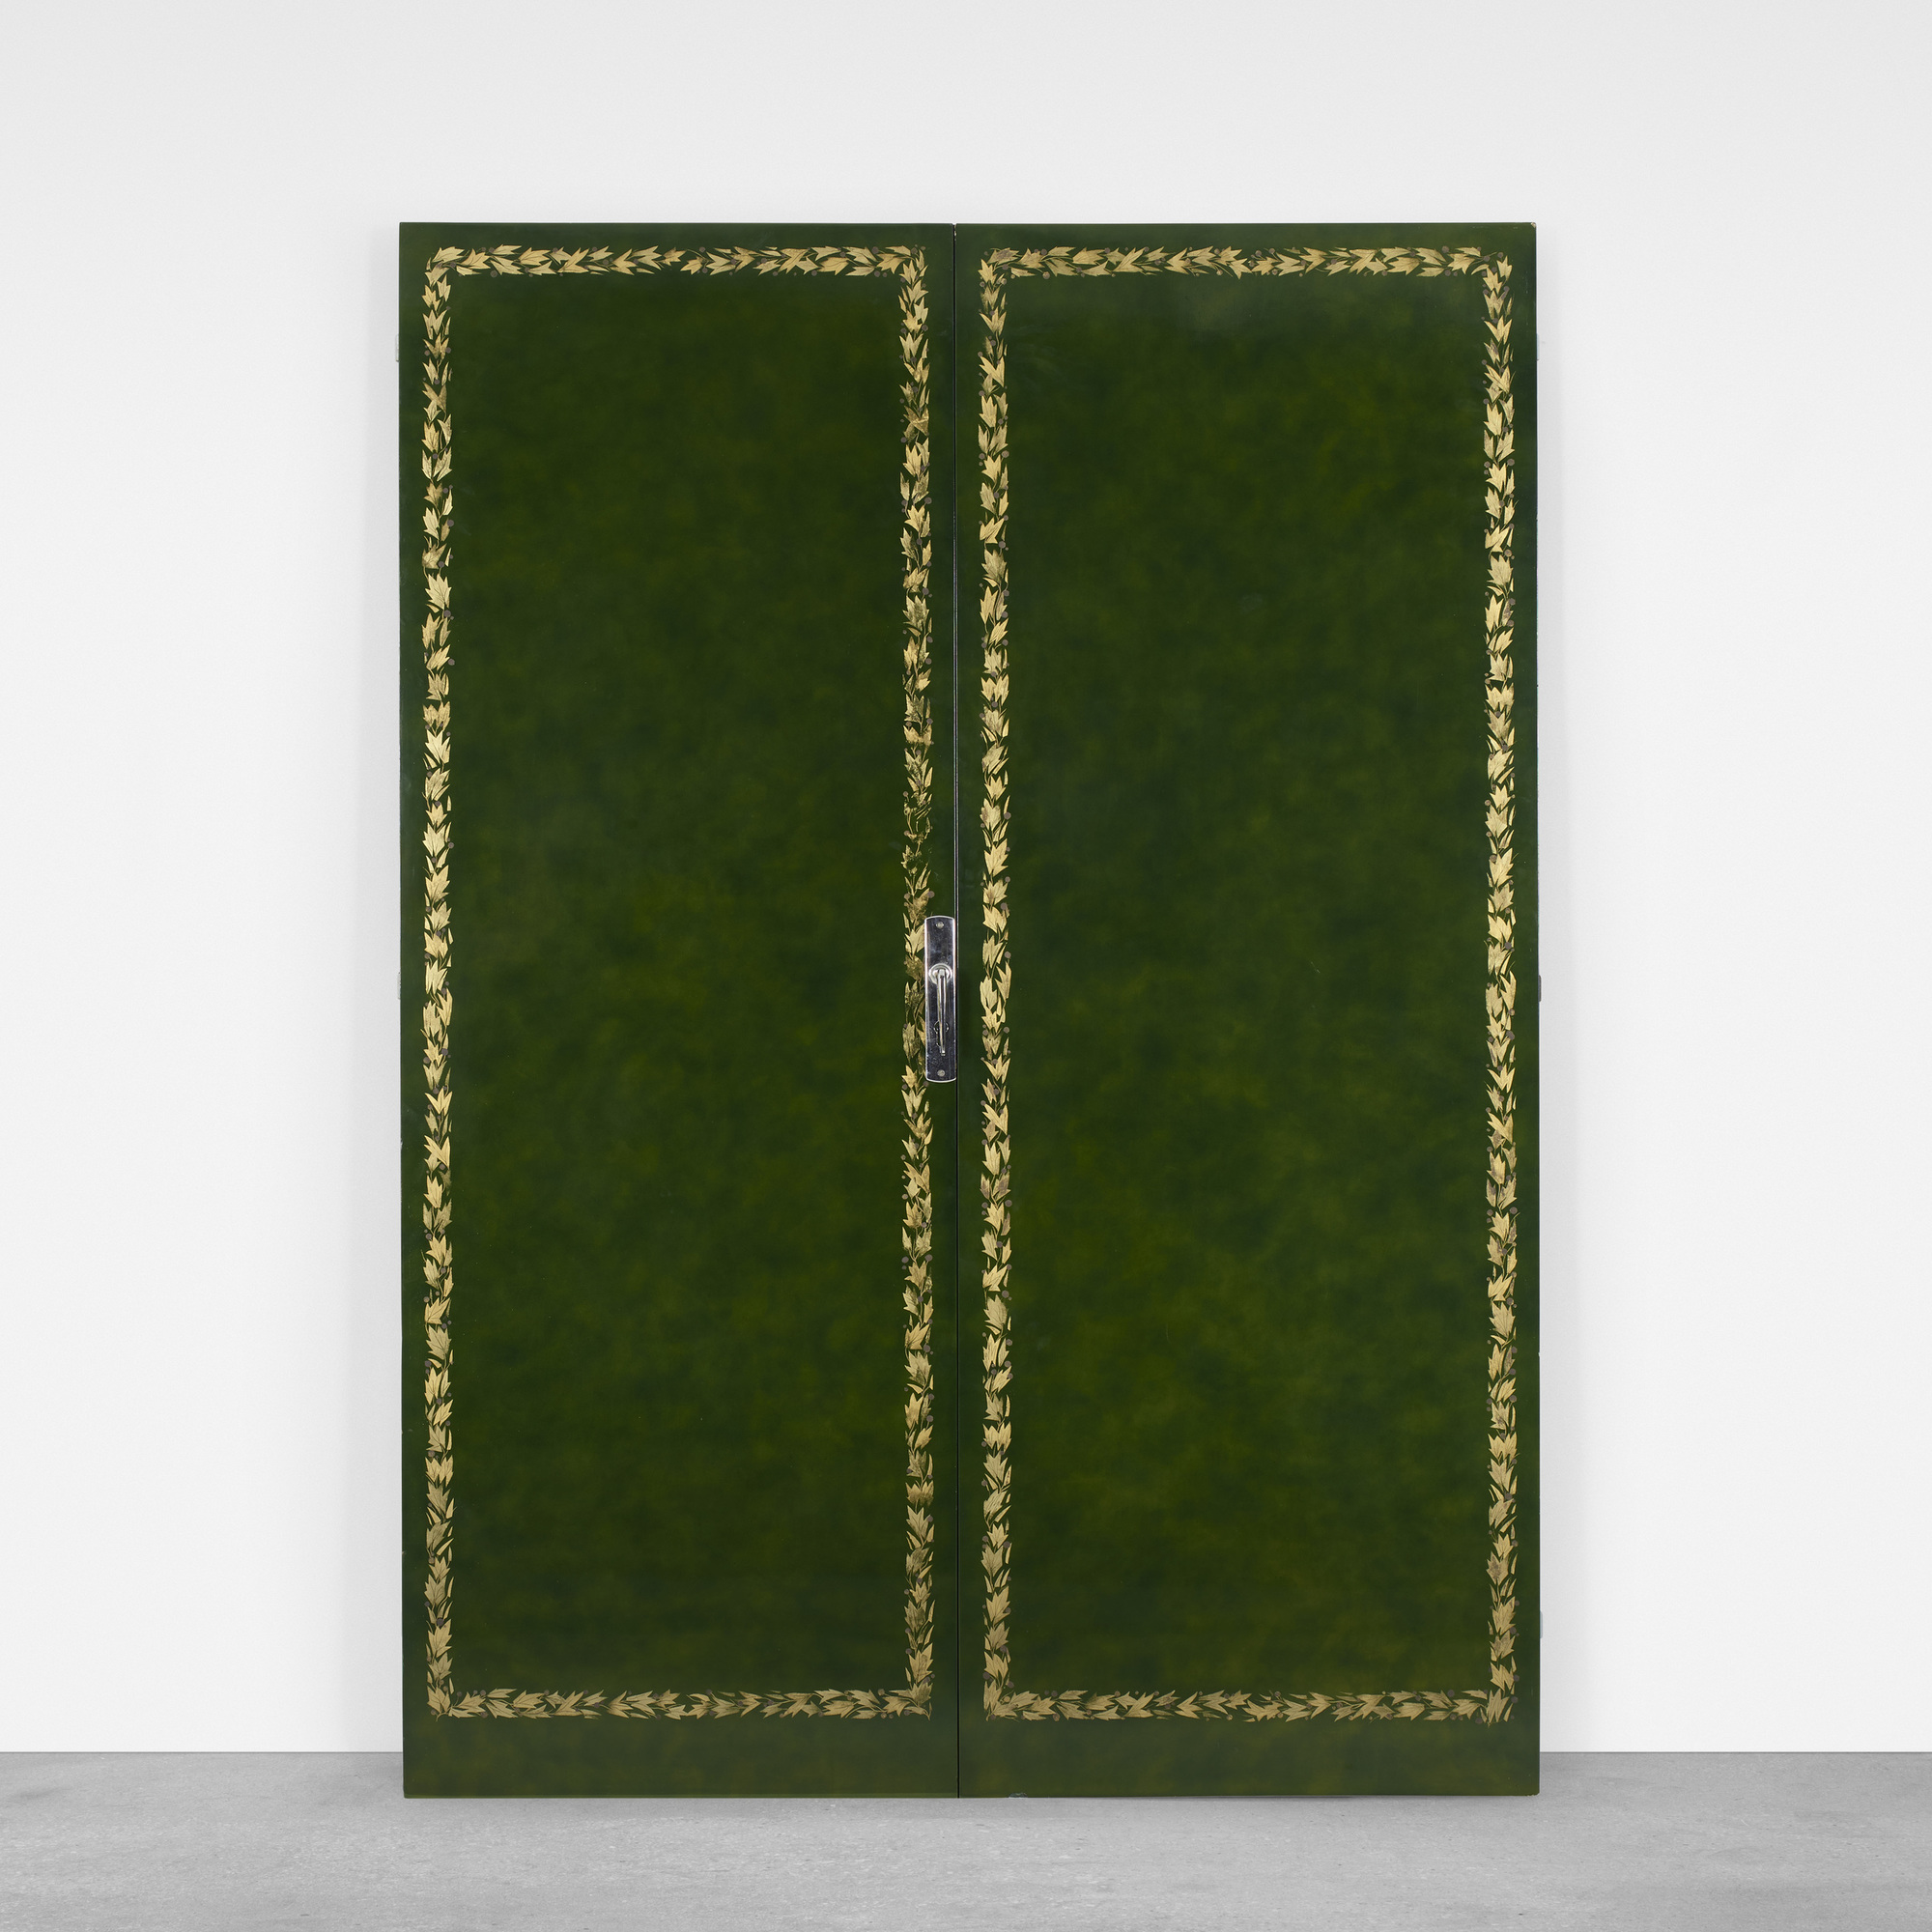 142: Jean Royère / doors, pair (2 of 2)